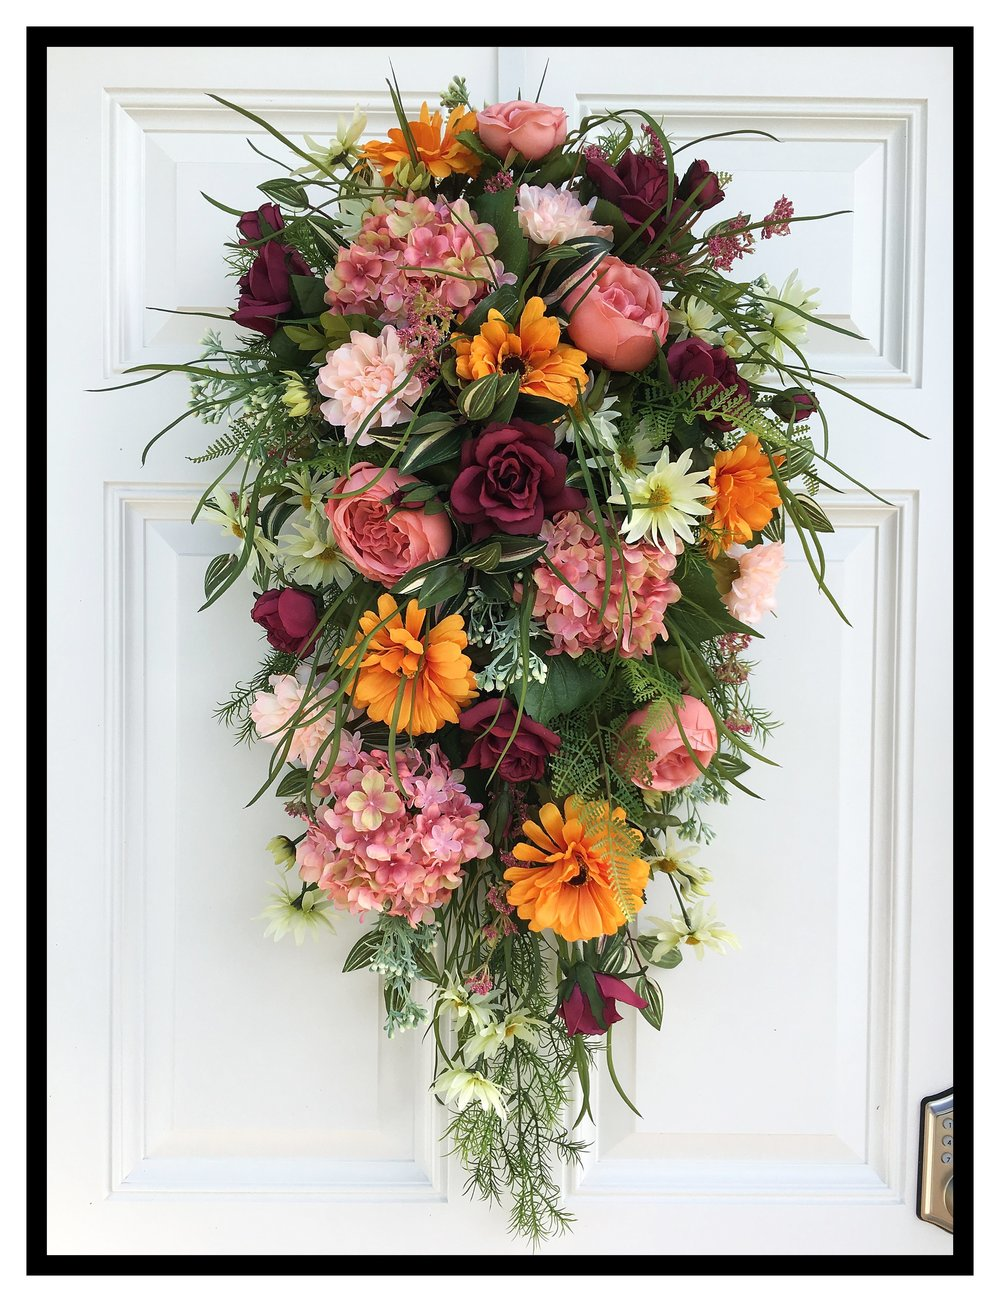 Summer Wreaths Front Door Swags Decorative Floral Summer